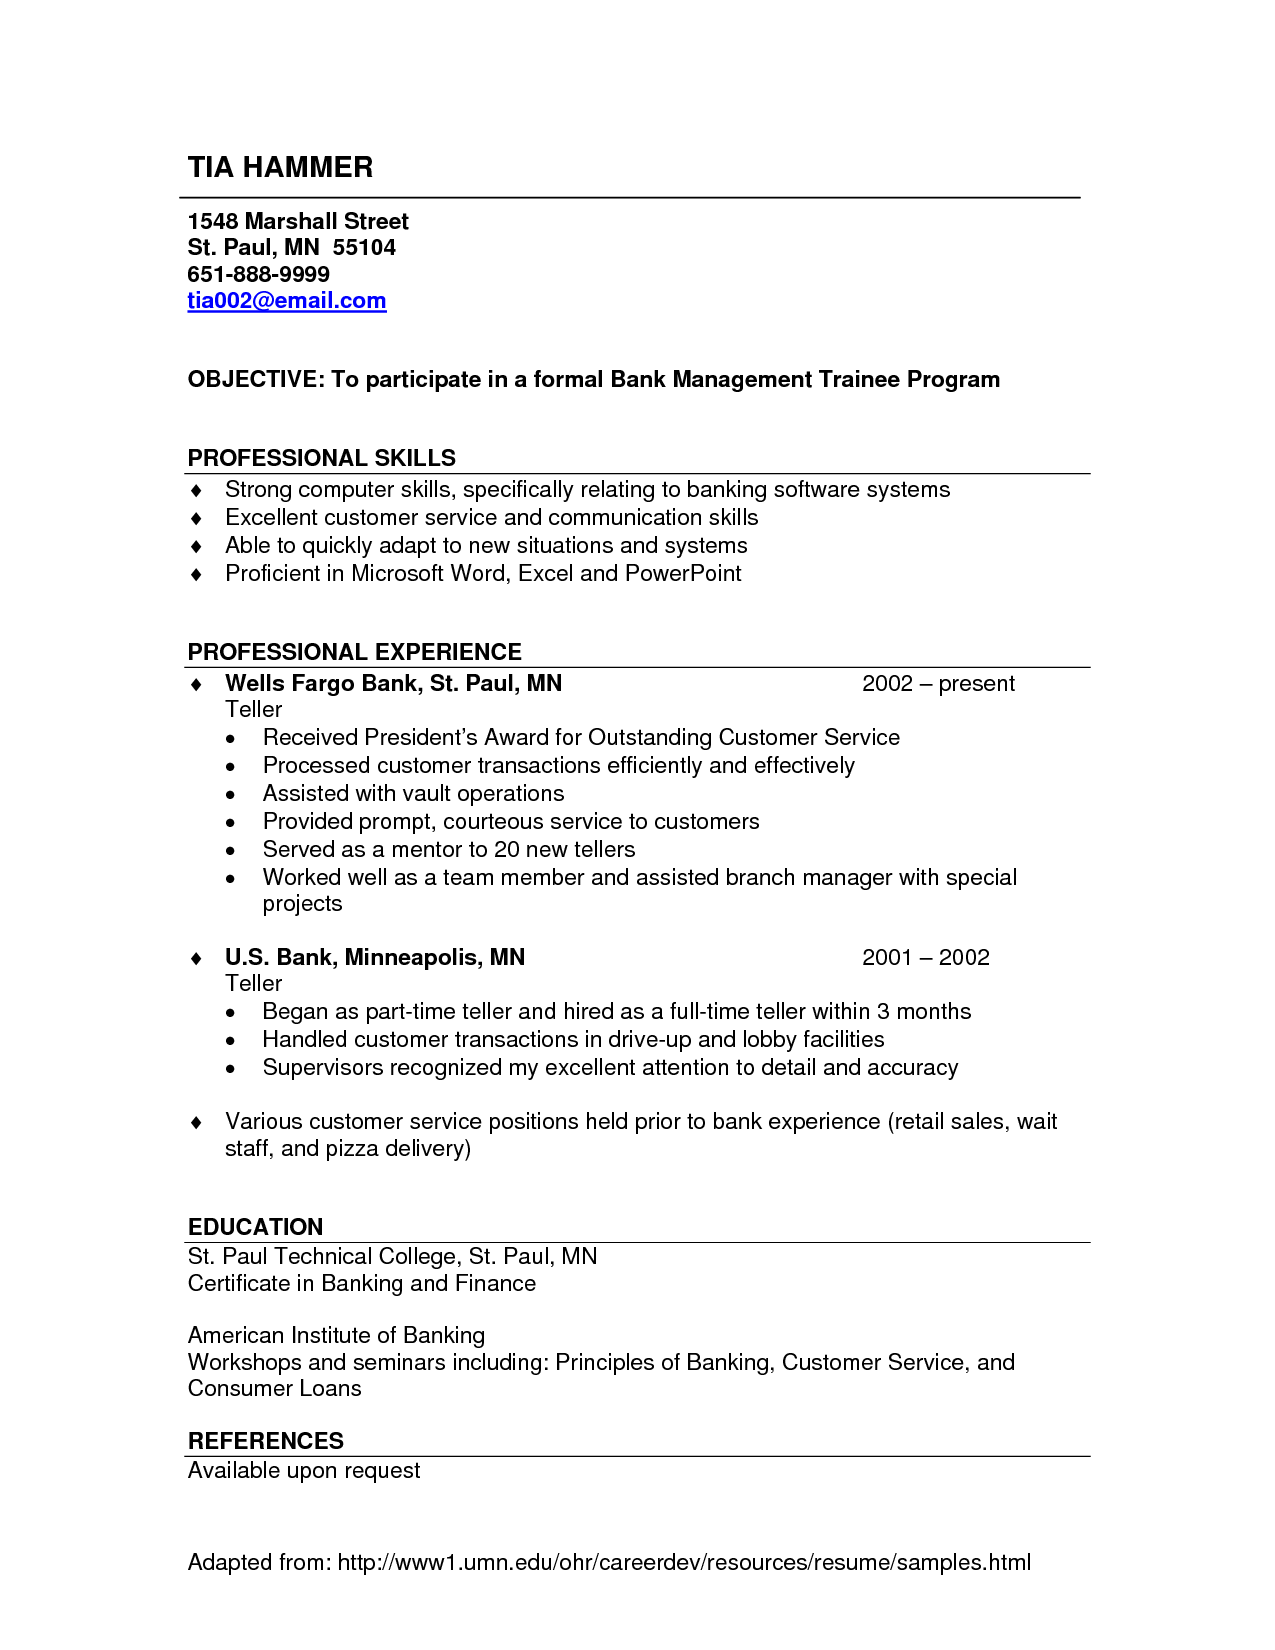 resume Bank Teller Resume Examples skills for bank teller ninja turtletechrepairs co teller